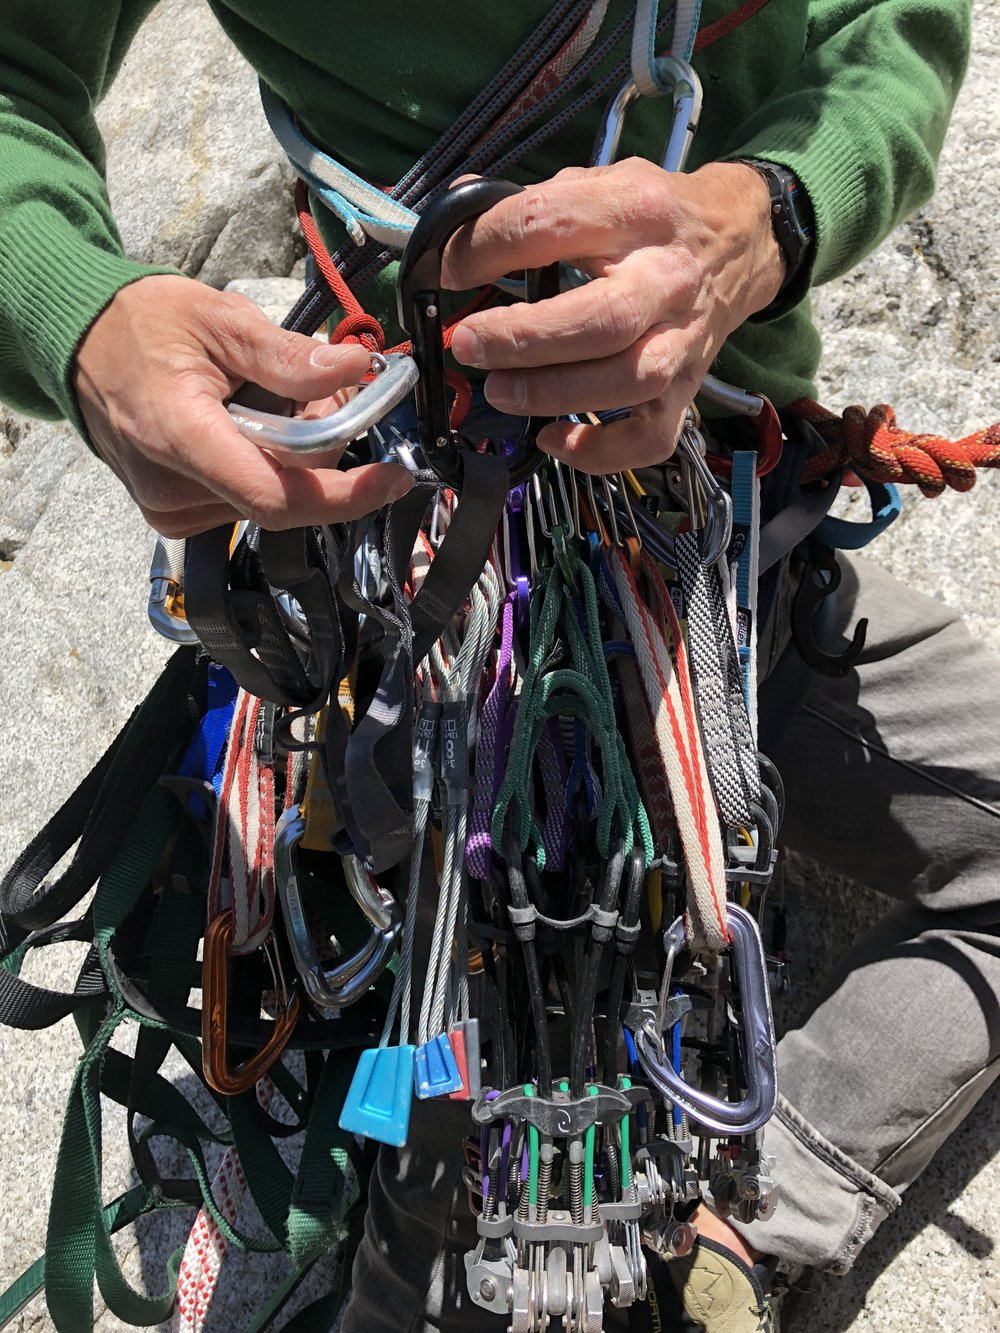 The rack was a bit bigger than what we use at the Gunks.